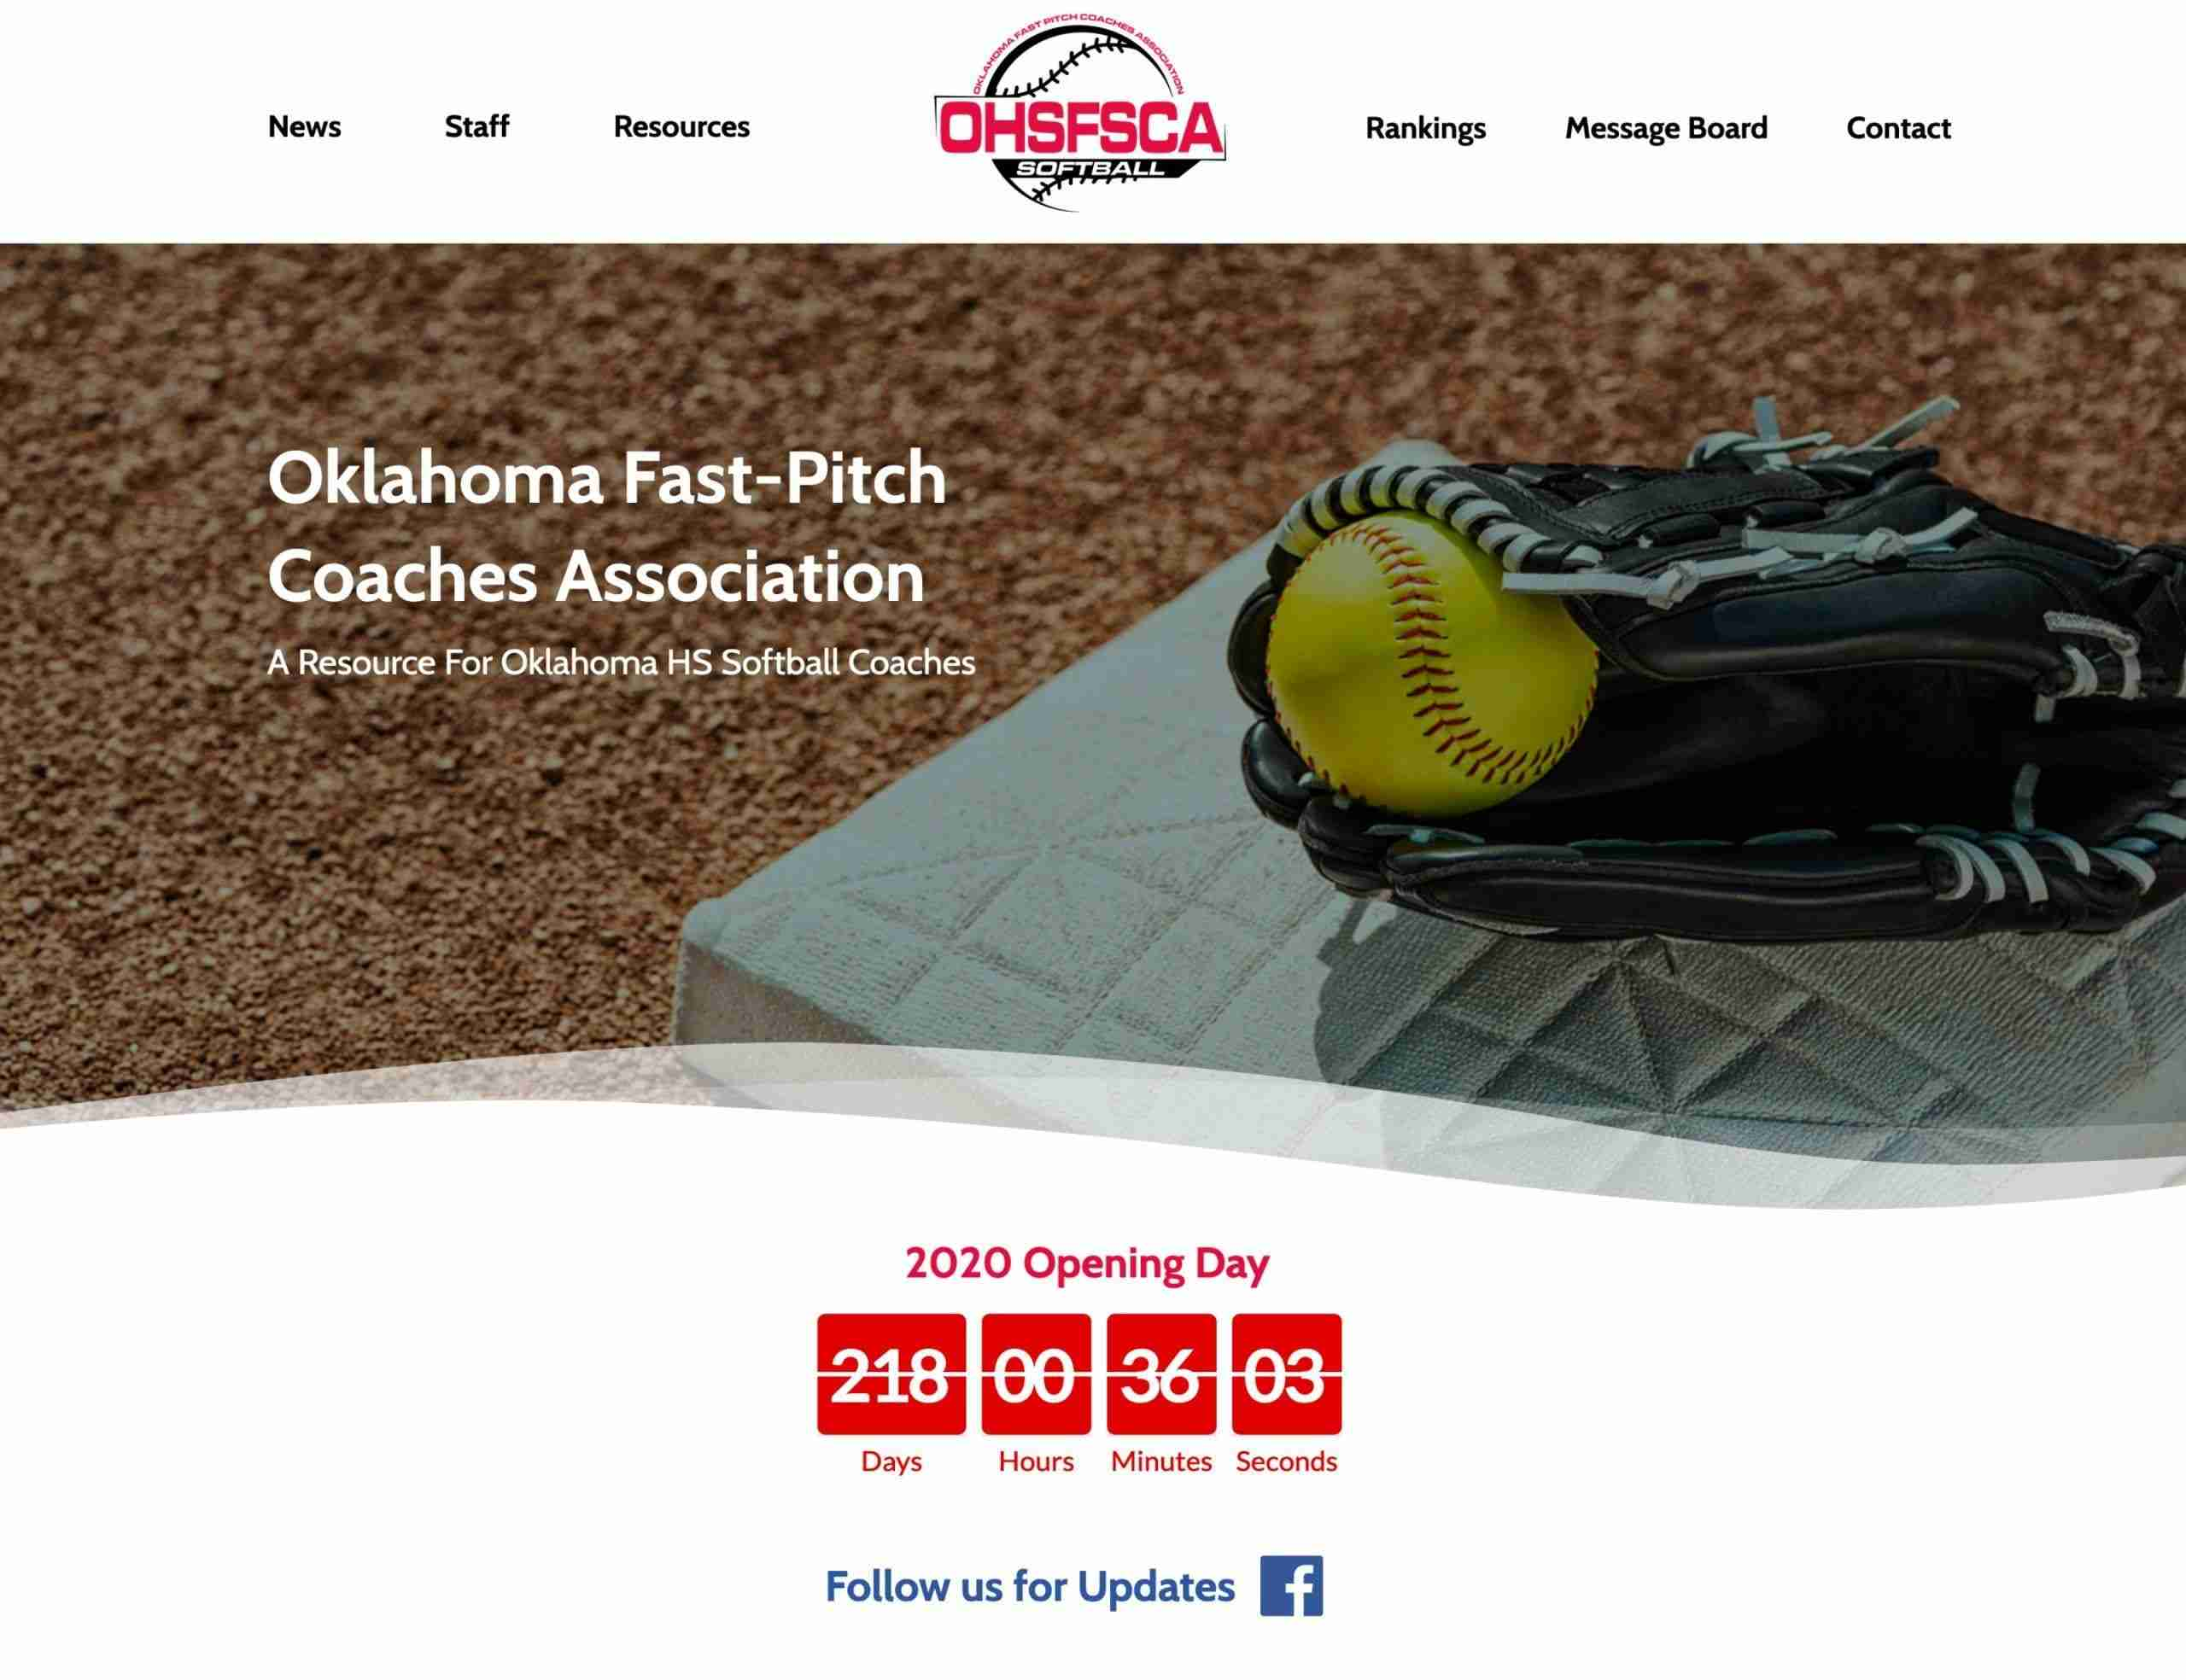 Oklahoma Fast-Pitch Coaches Association